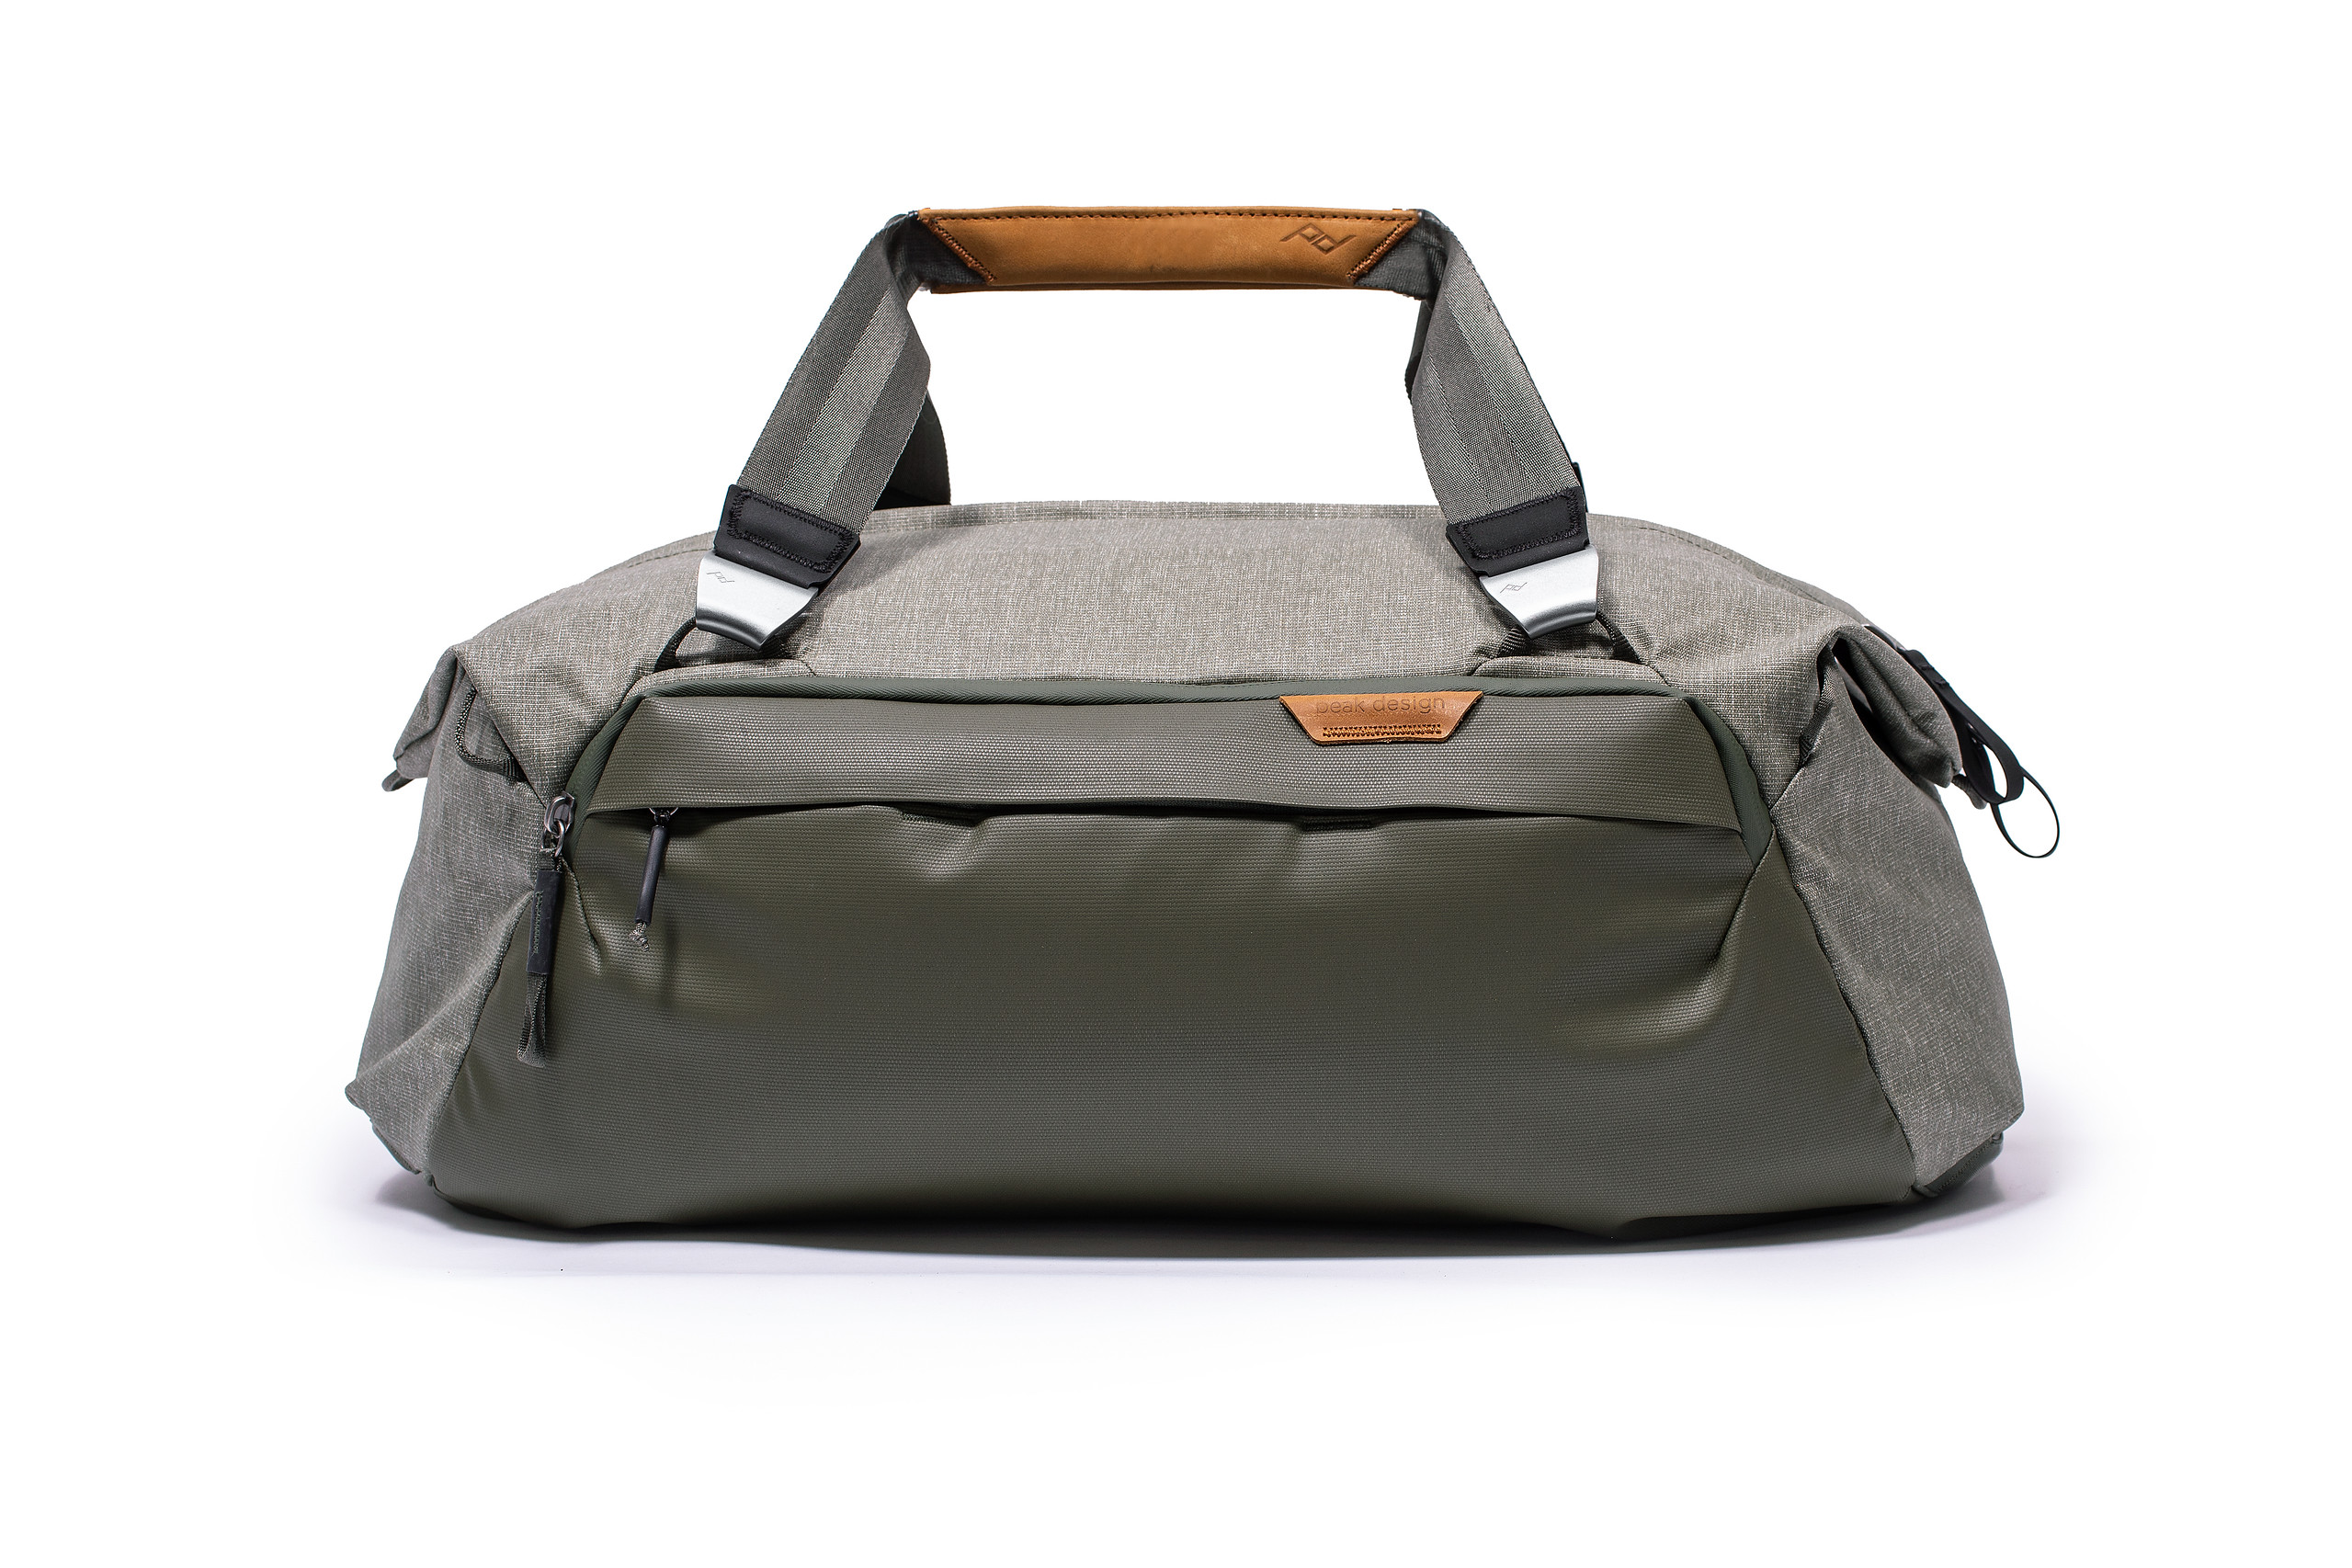 Peak_Design_Travel_DuffelpackBag_65_Salbeigruen